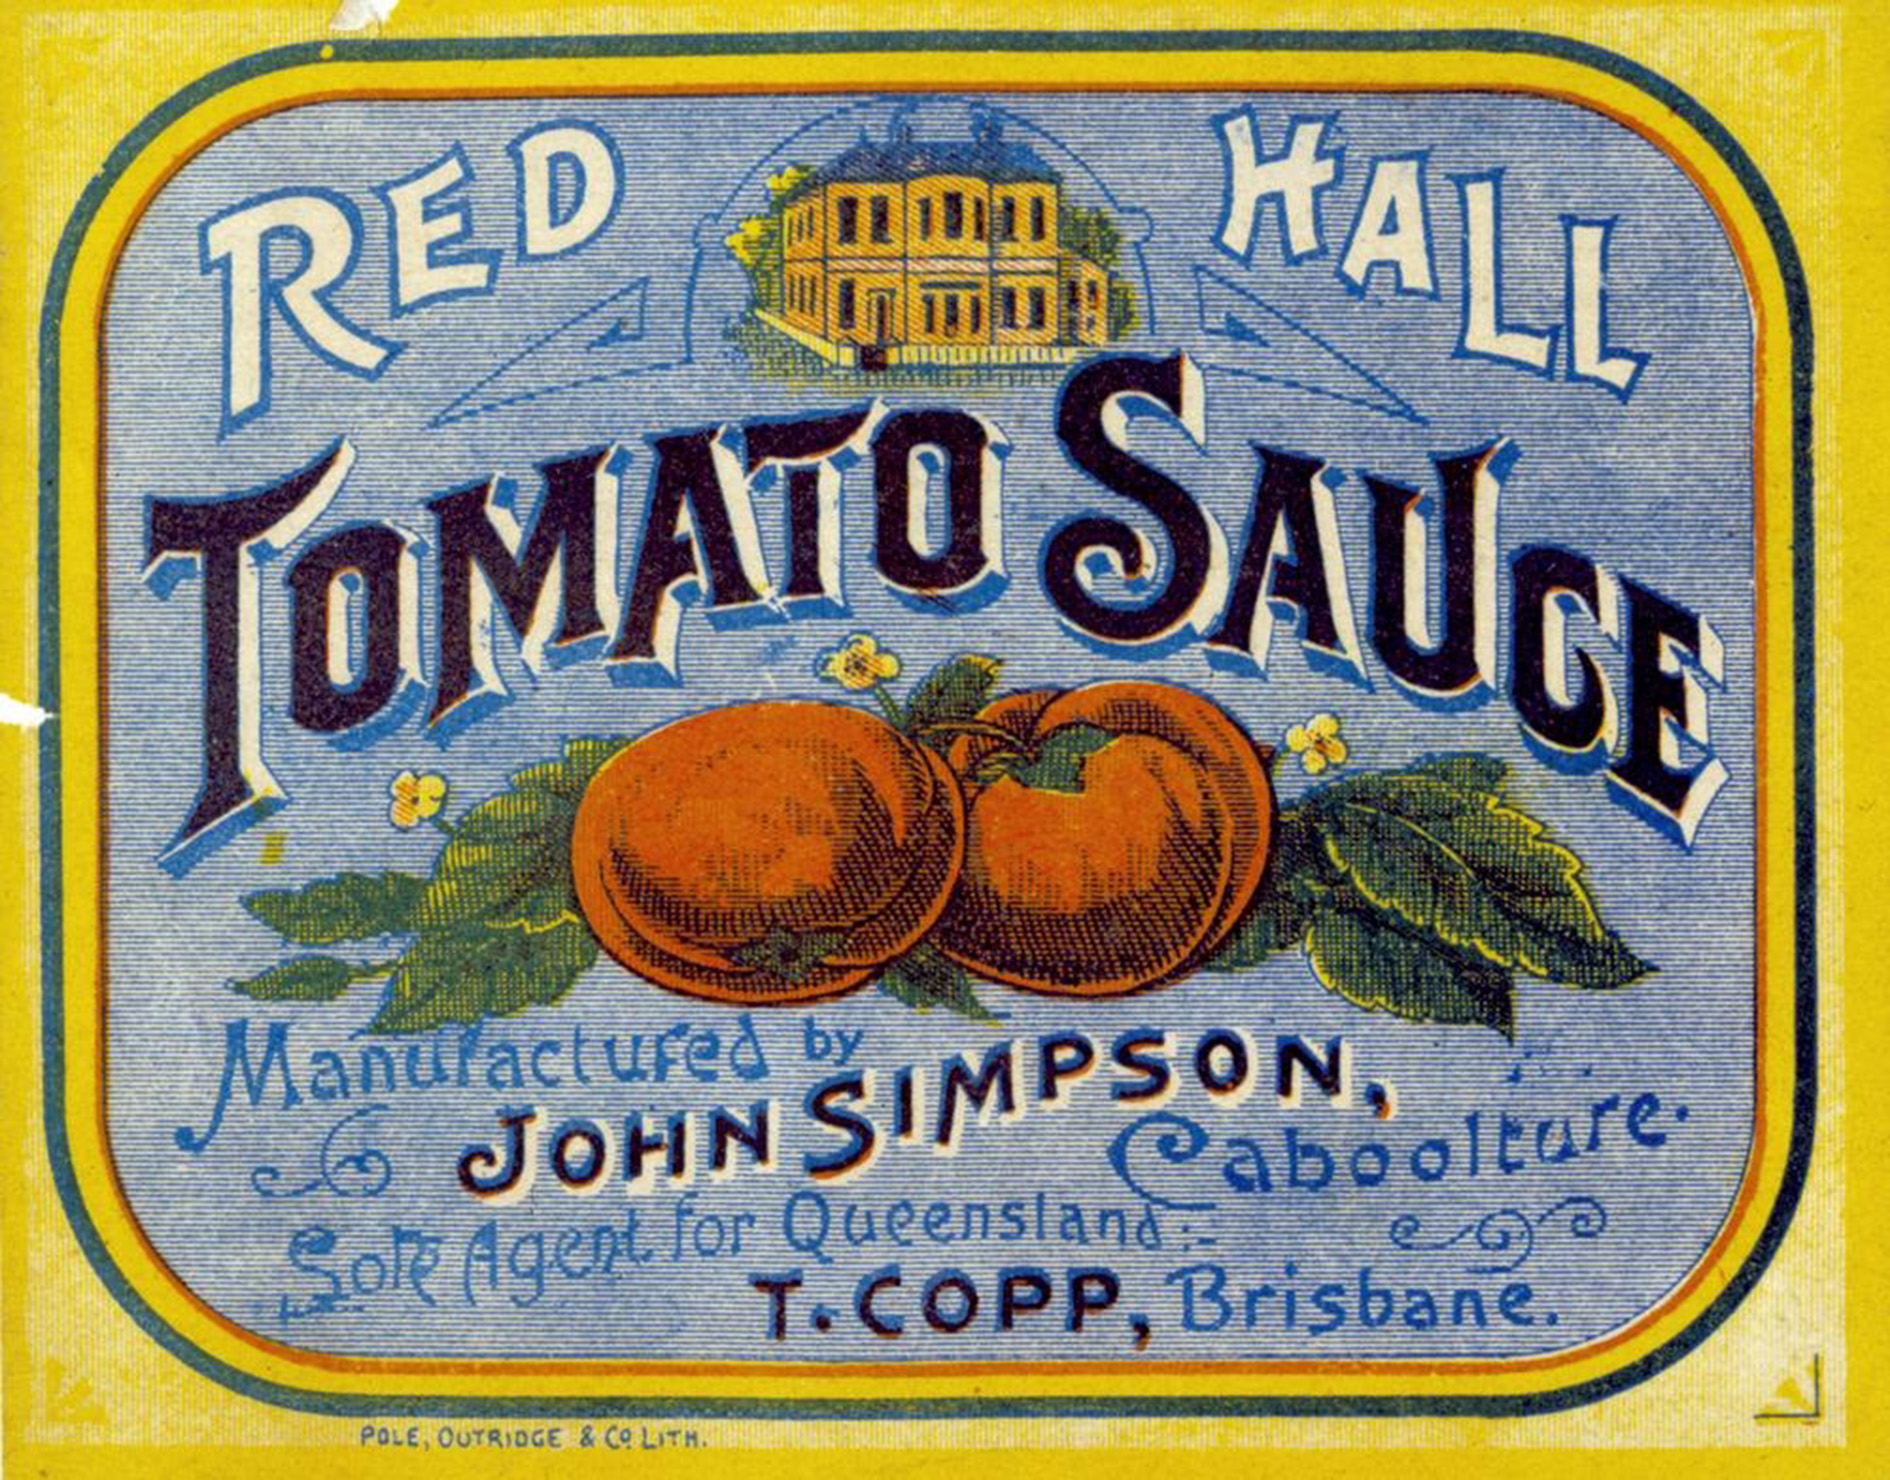 Red Hall Tomato Sauce label